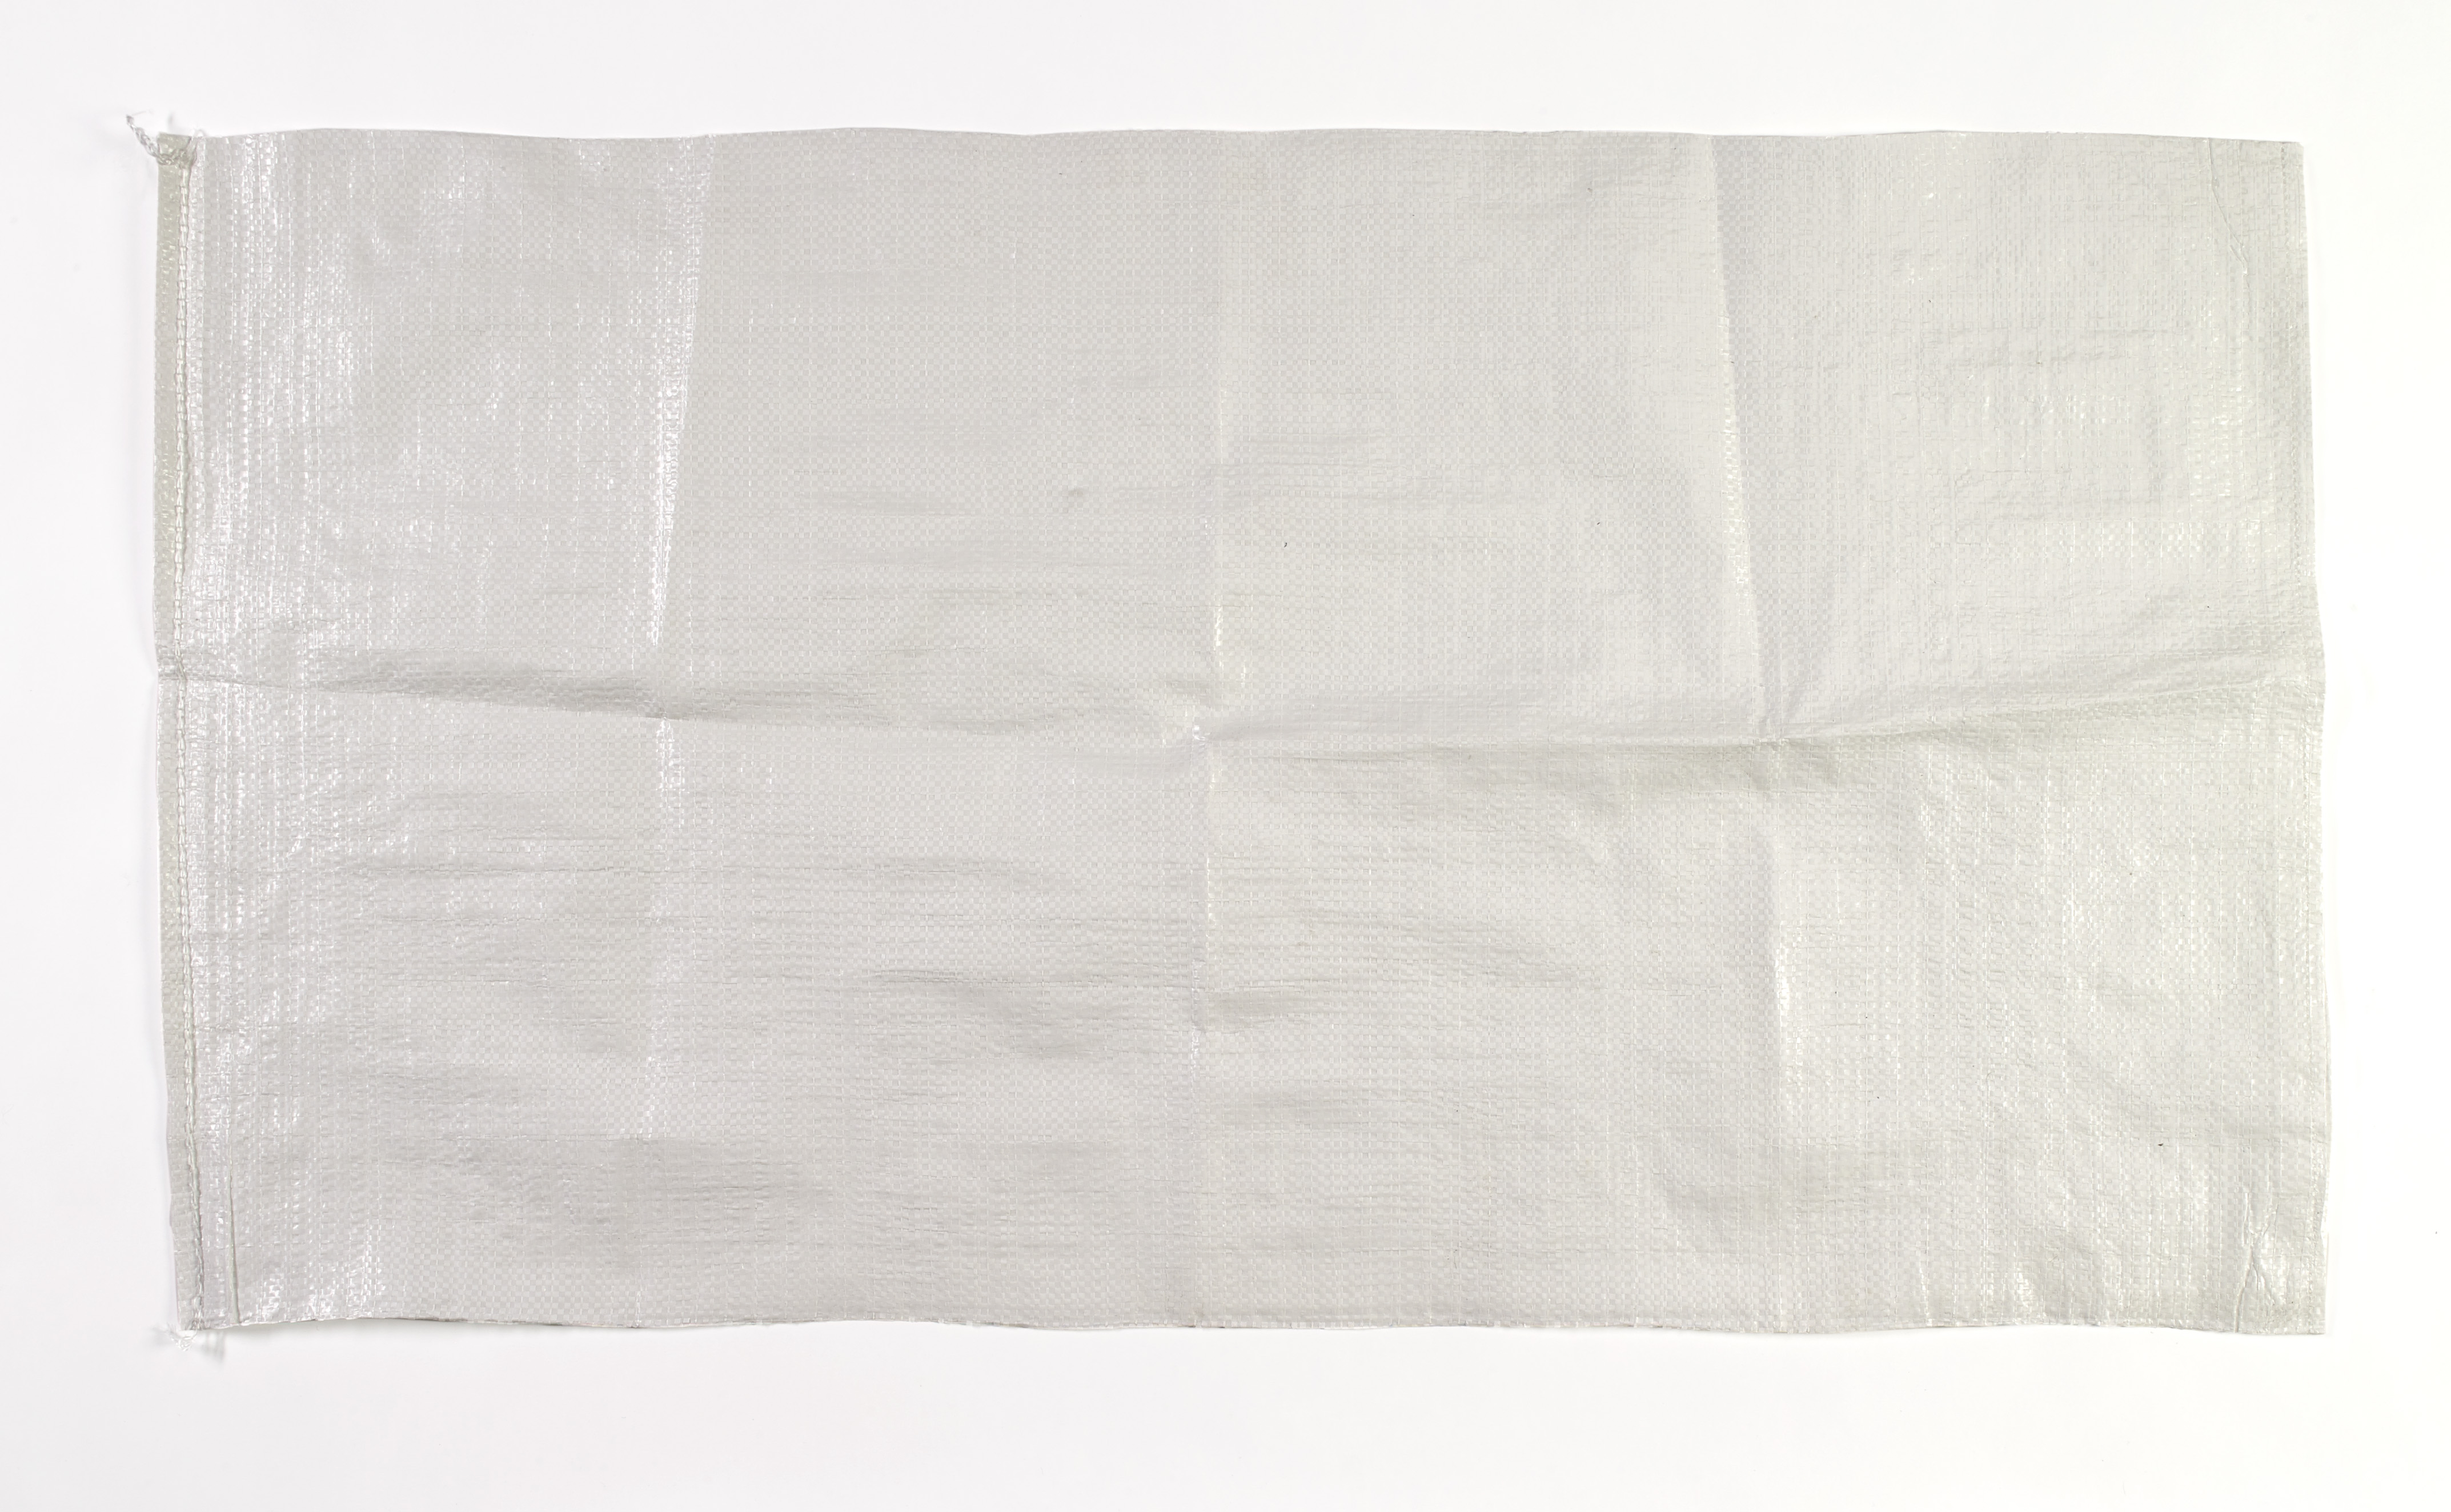 M14971-10-2240, Woven Polypropylene Chair Bags, 22 in. X 40 in. ( pack of 25), Mutual Industries